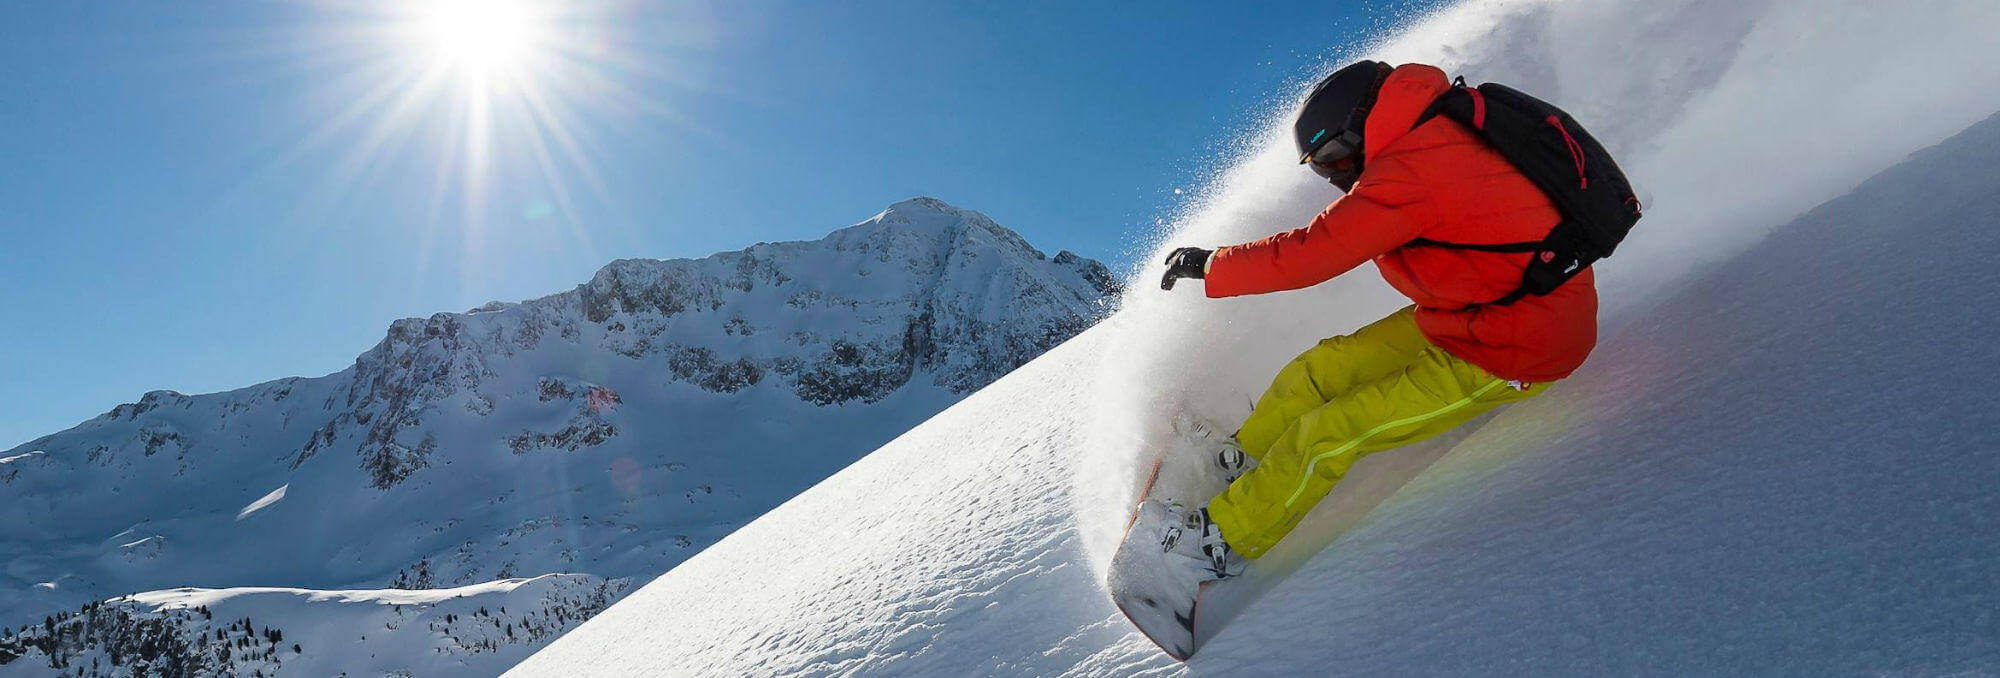 A Guide to Choose the Right Size Snowboard Bindings